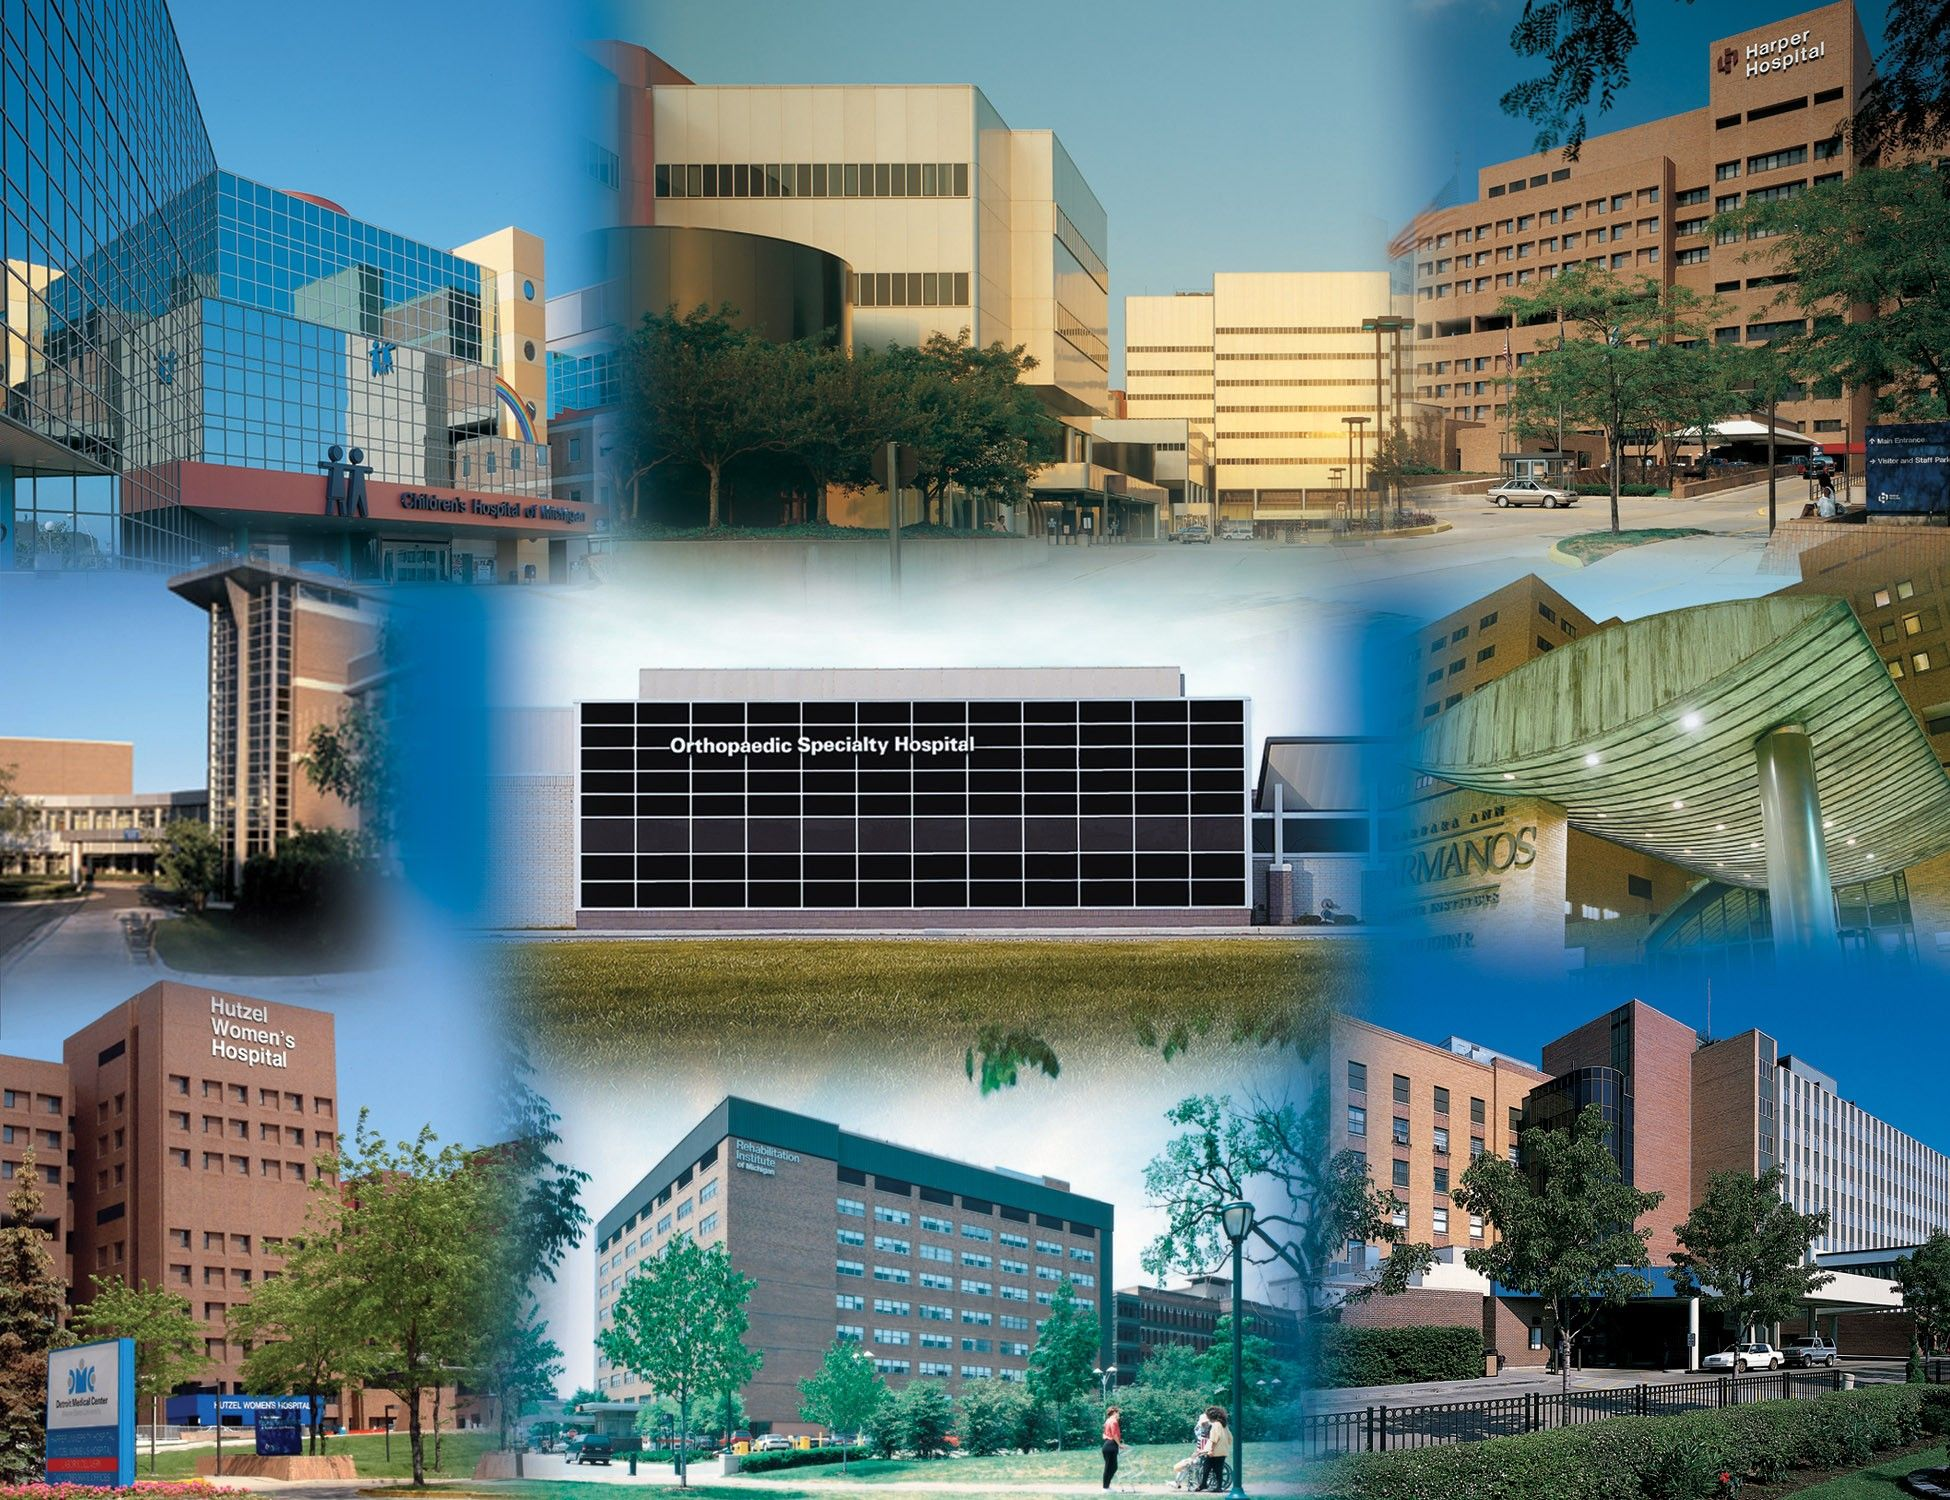 Detroit Medical Center | Love of Detroit | Detroit, Michigan